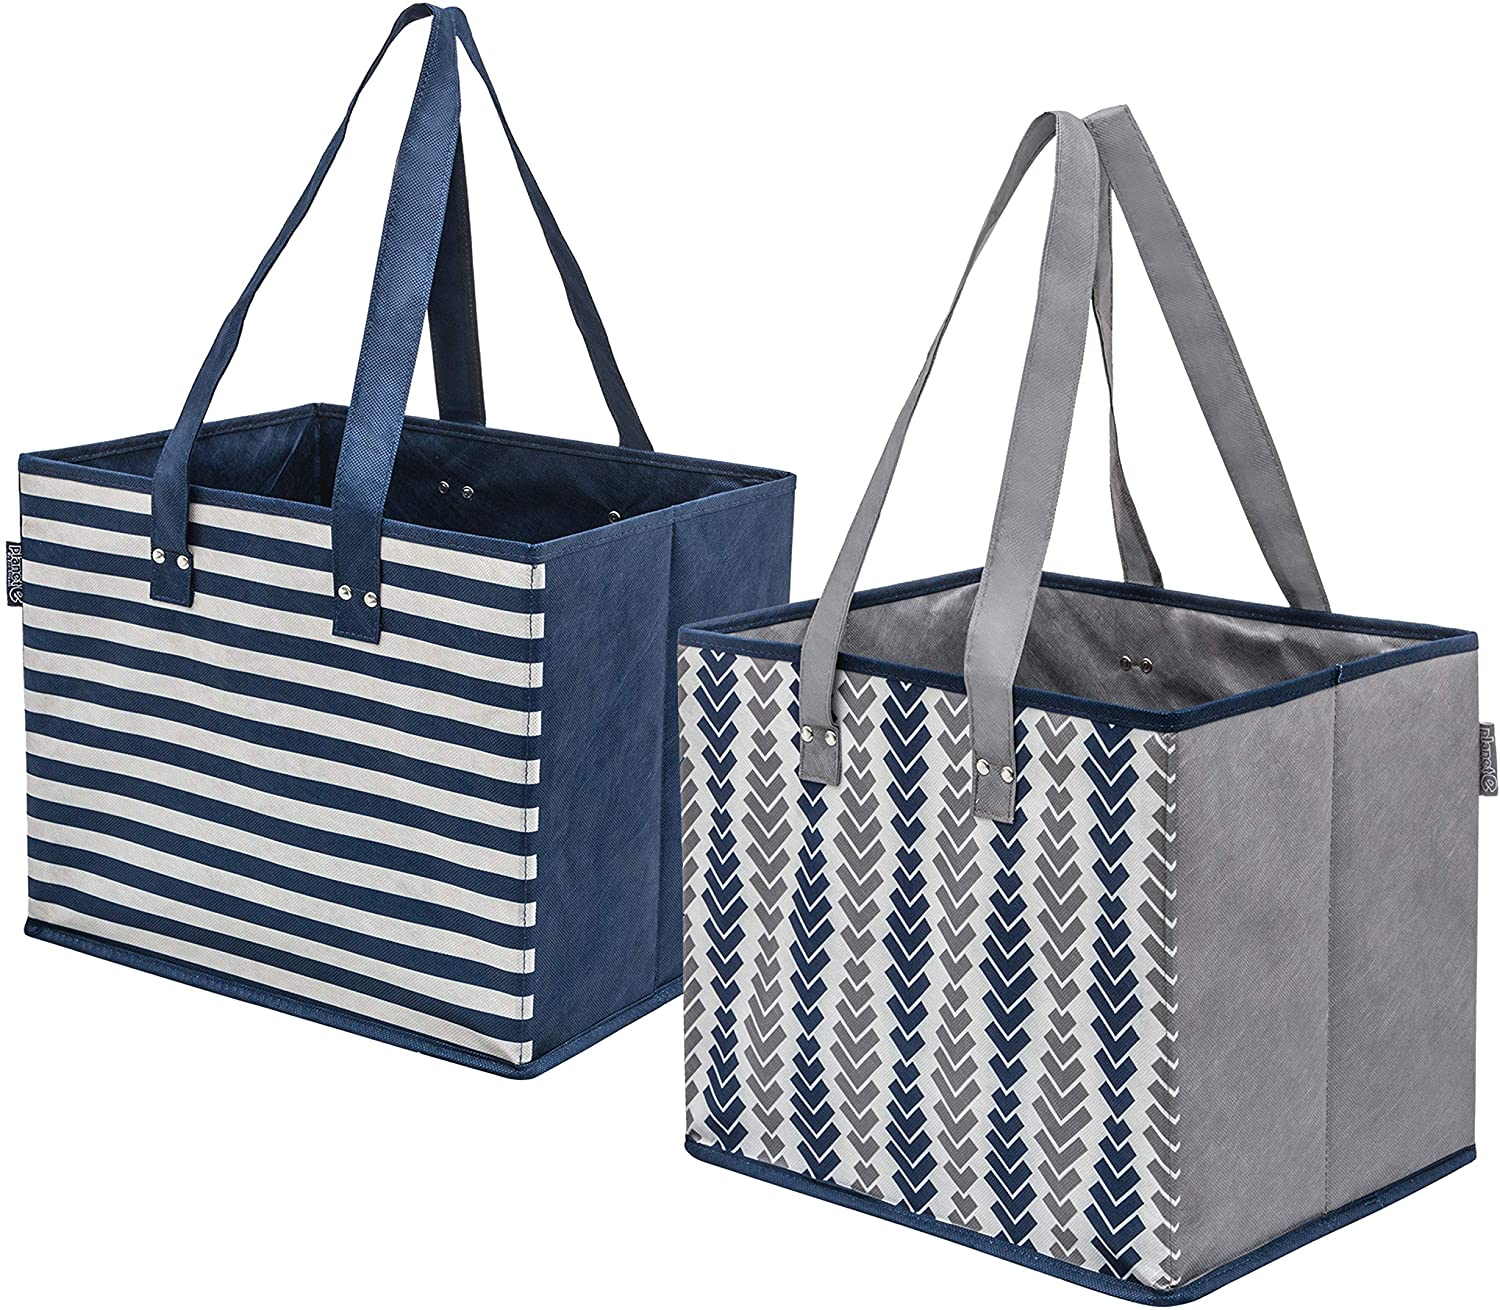 Planet E Reusable Grocery Shopping Bags - Large Collapsible Boxes With Reinforced Bottoms Made of Recycled Plastic (Pack of 2)